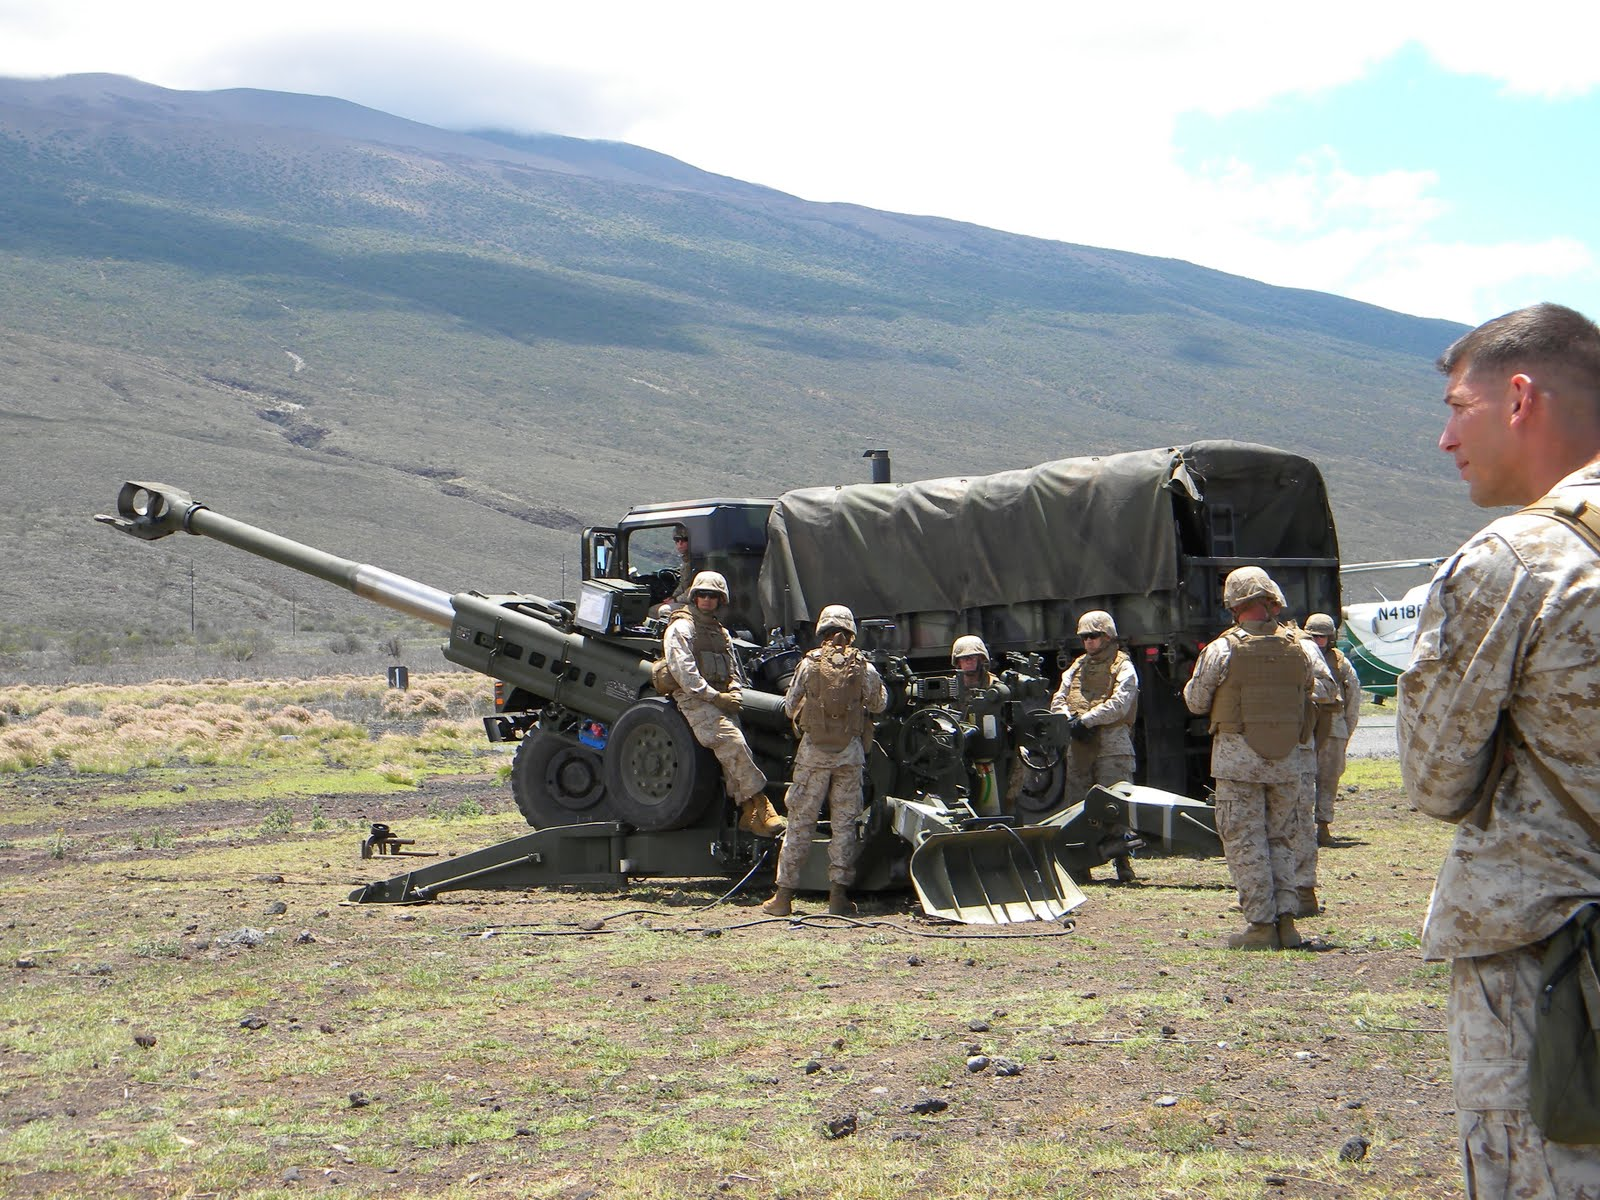 Marines at Pohakuloa Training